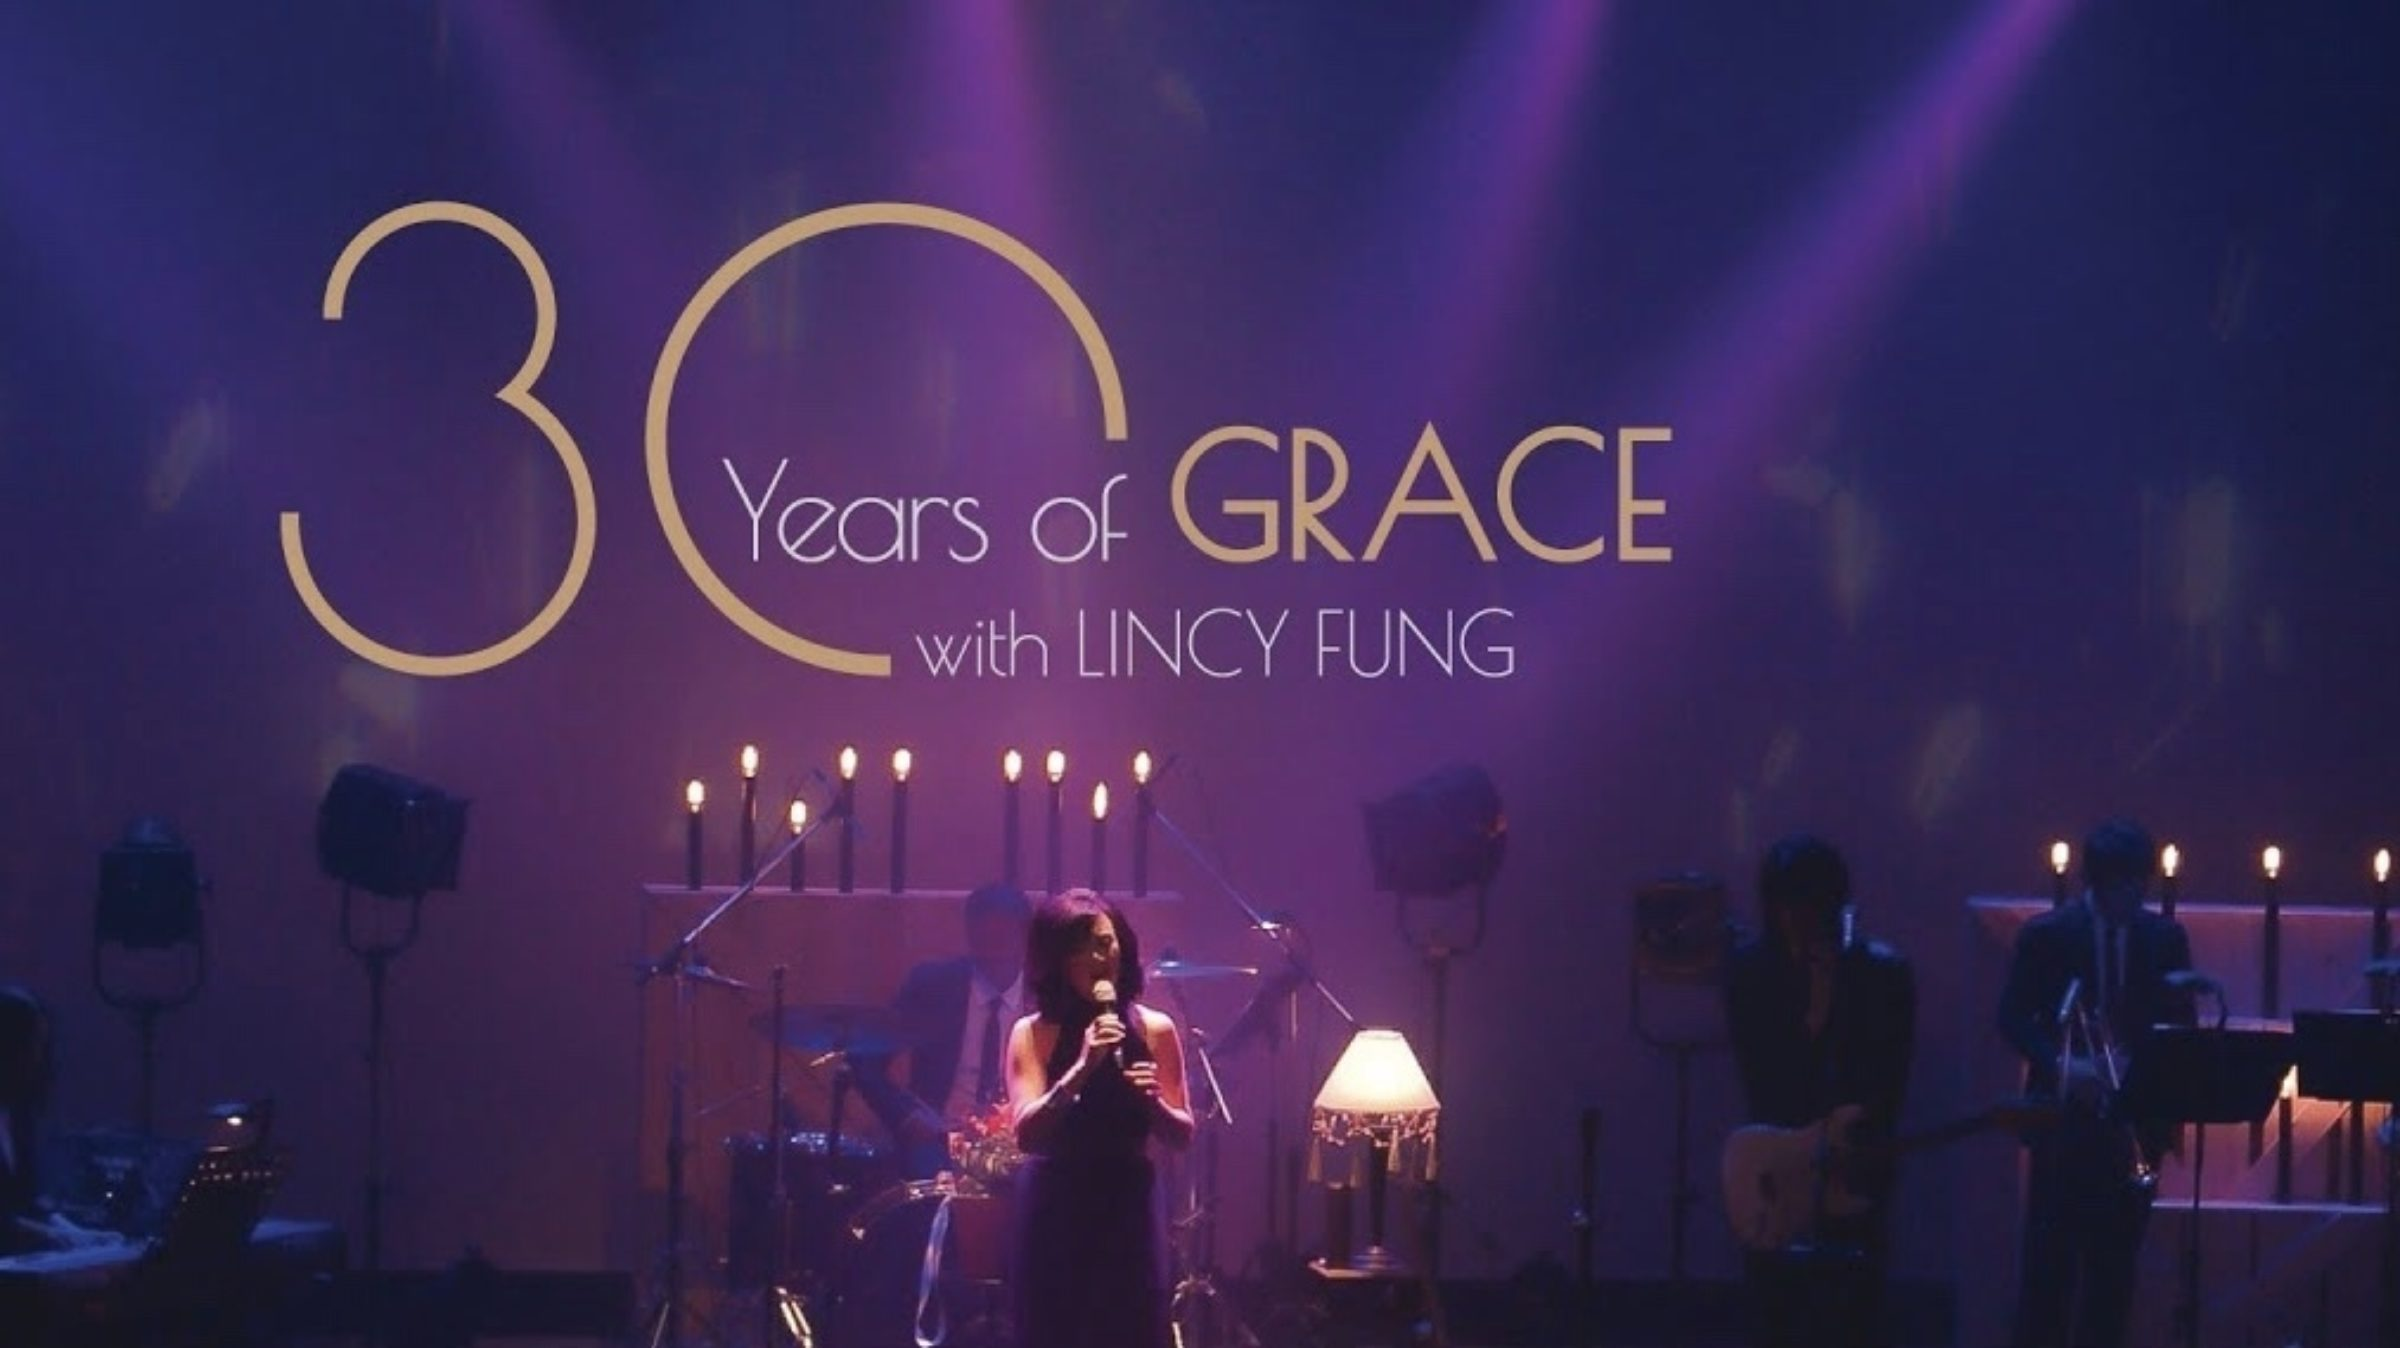 Lincy Fung: 30 Years of Grace